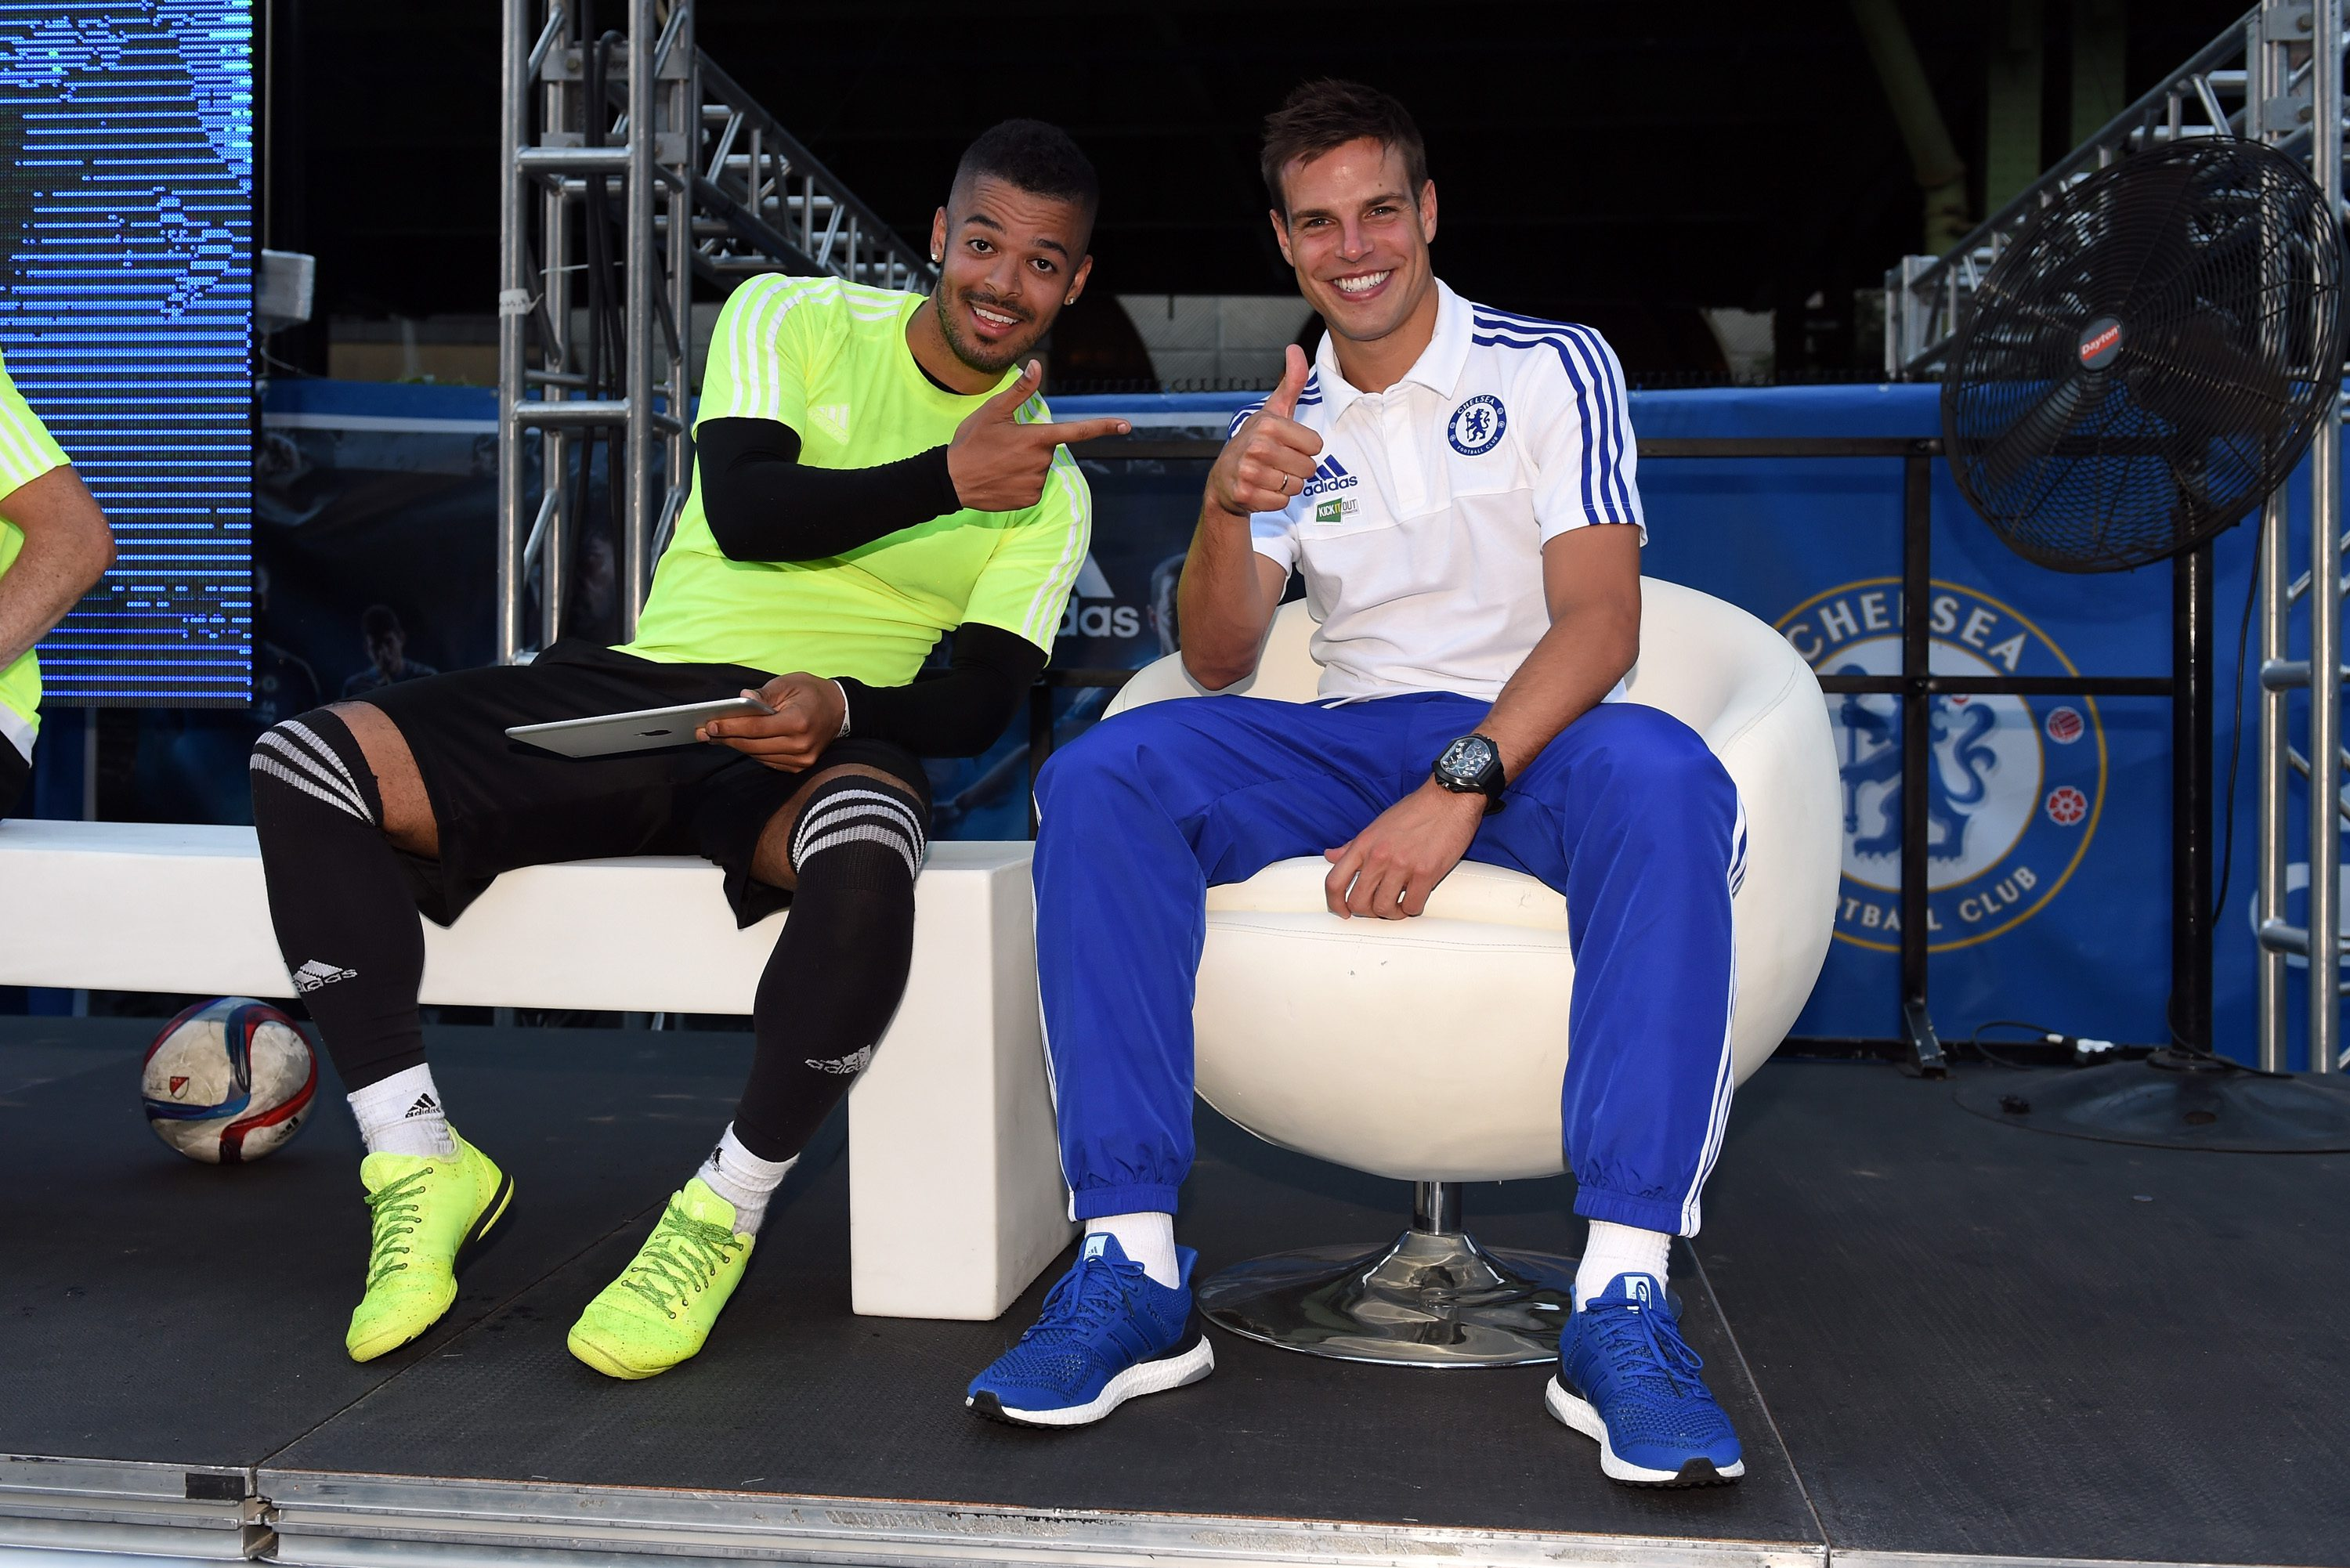 Chelsea's Cesar Azpilicueta during the Adidas Be The Difference Event on 21st July 2015 at the FC Harlem Training Ground in Harlem, New York, USA.